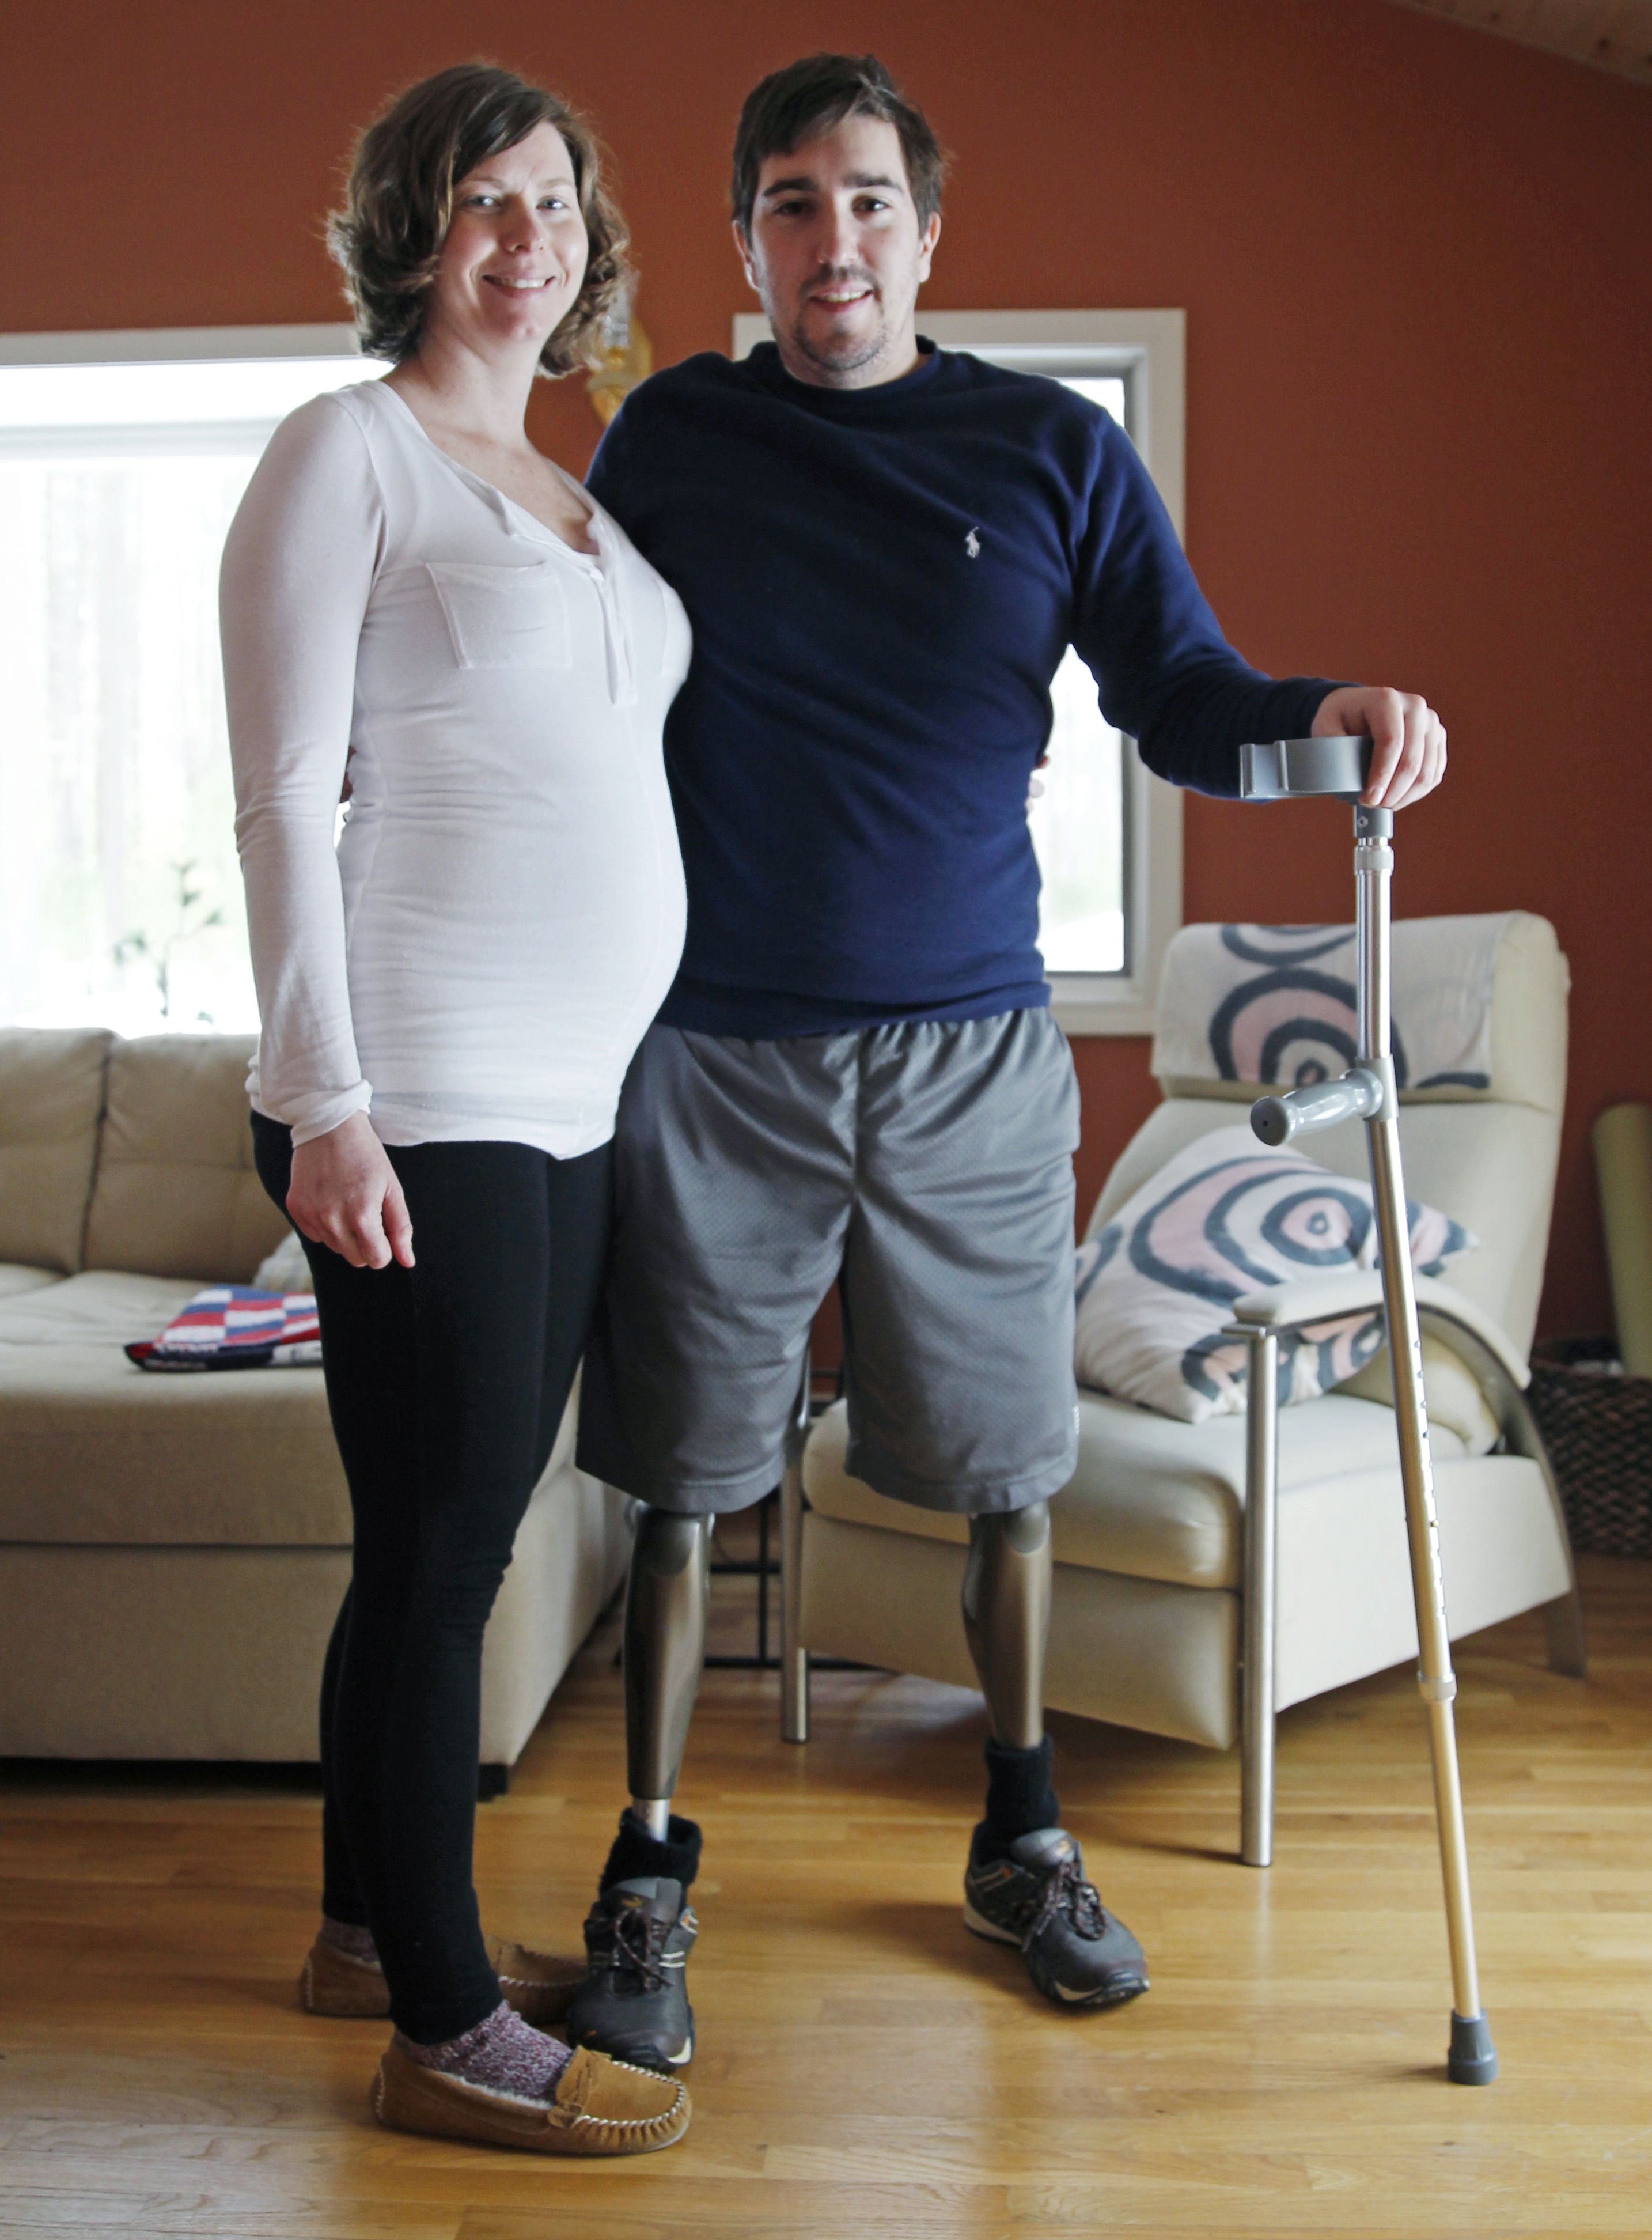 eb71deff61f4 Jeff Bauman, Erin Hurley engaged and expecting first child - The ...